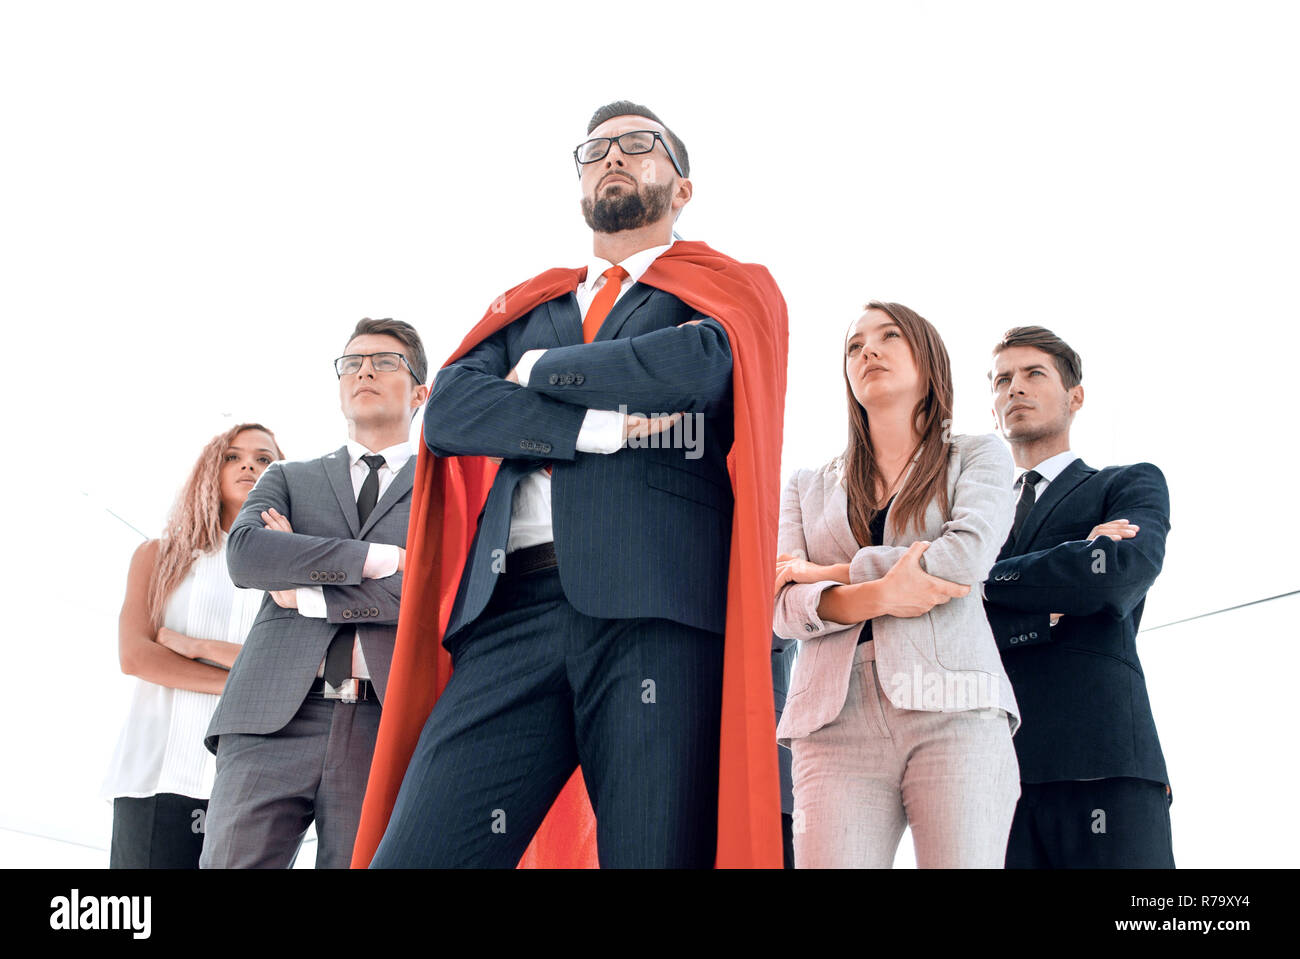 leader in the red cloak and the business team standing together - Stock Image